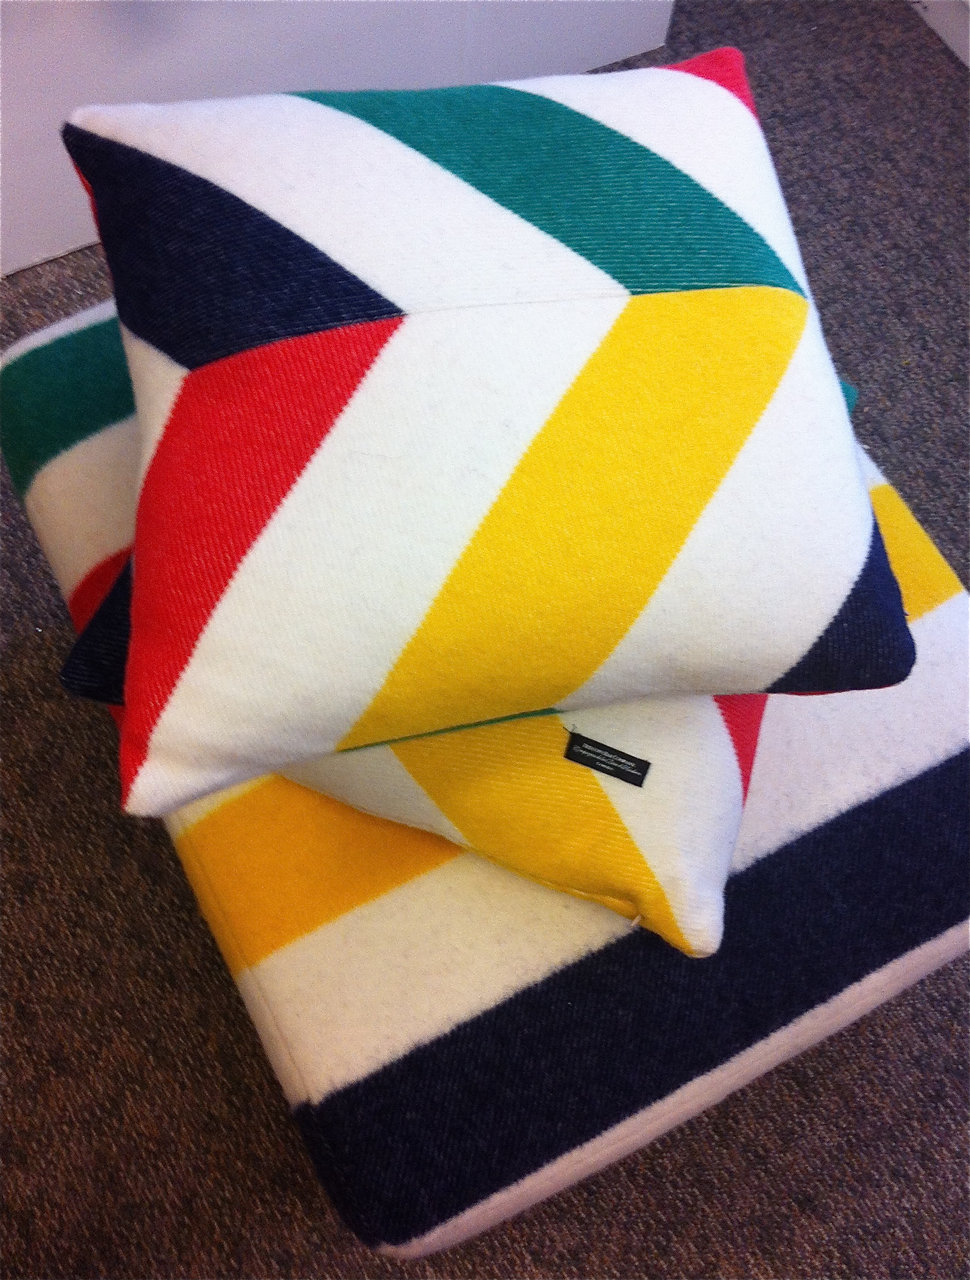 Decorative Pillows Hudson Bay : hbc blanket - DriverLayer Search Engine